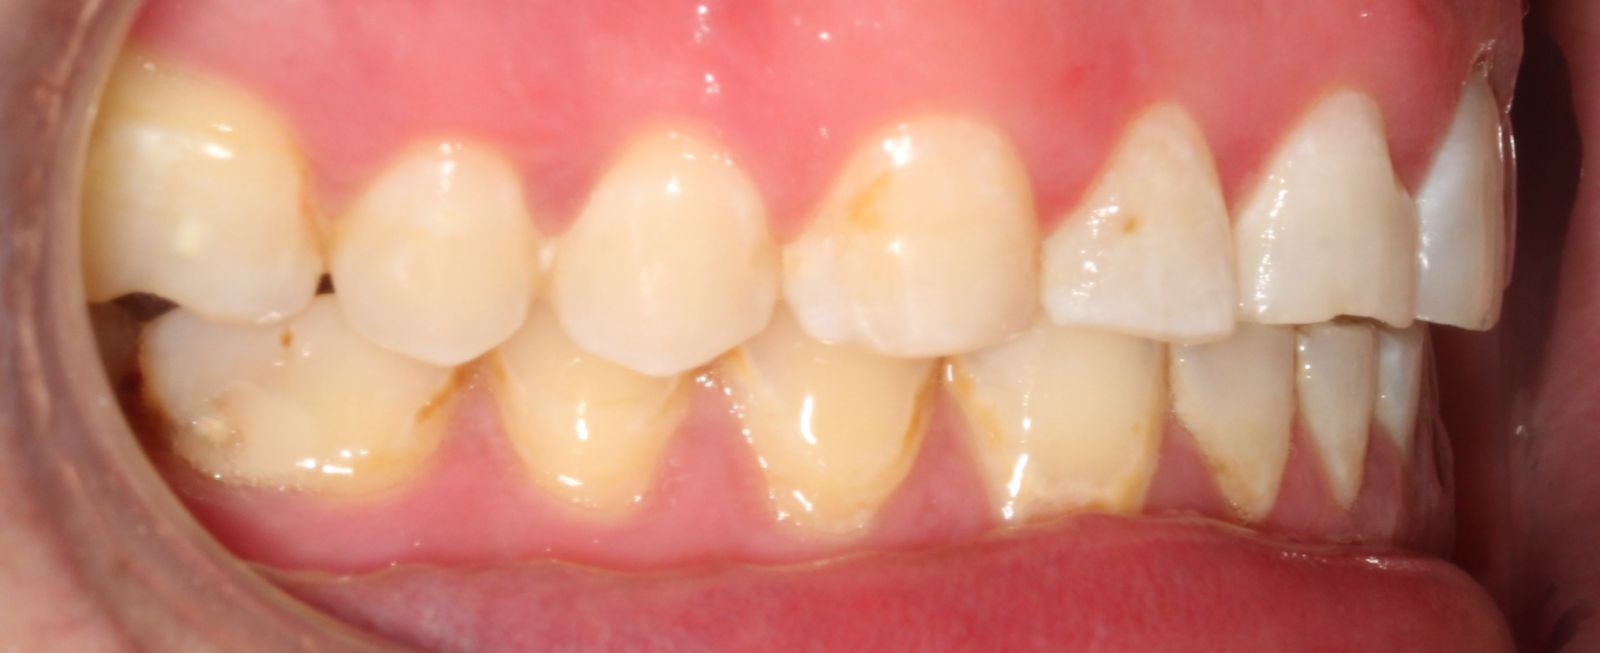 Before resin veneer smile makeover side view